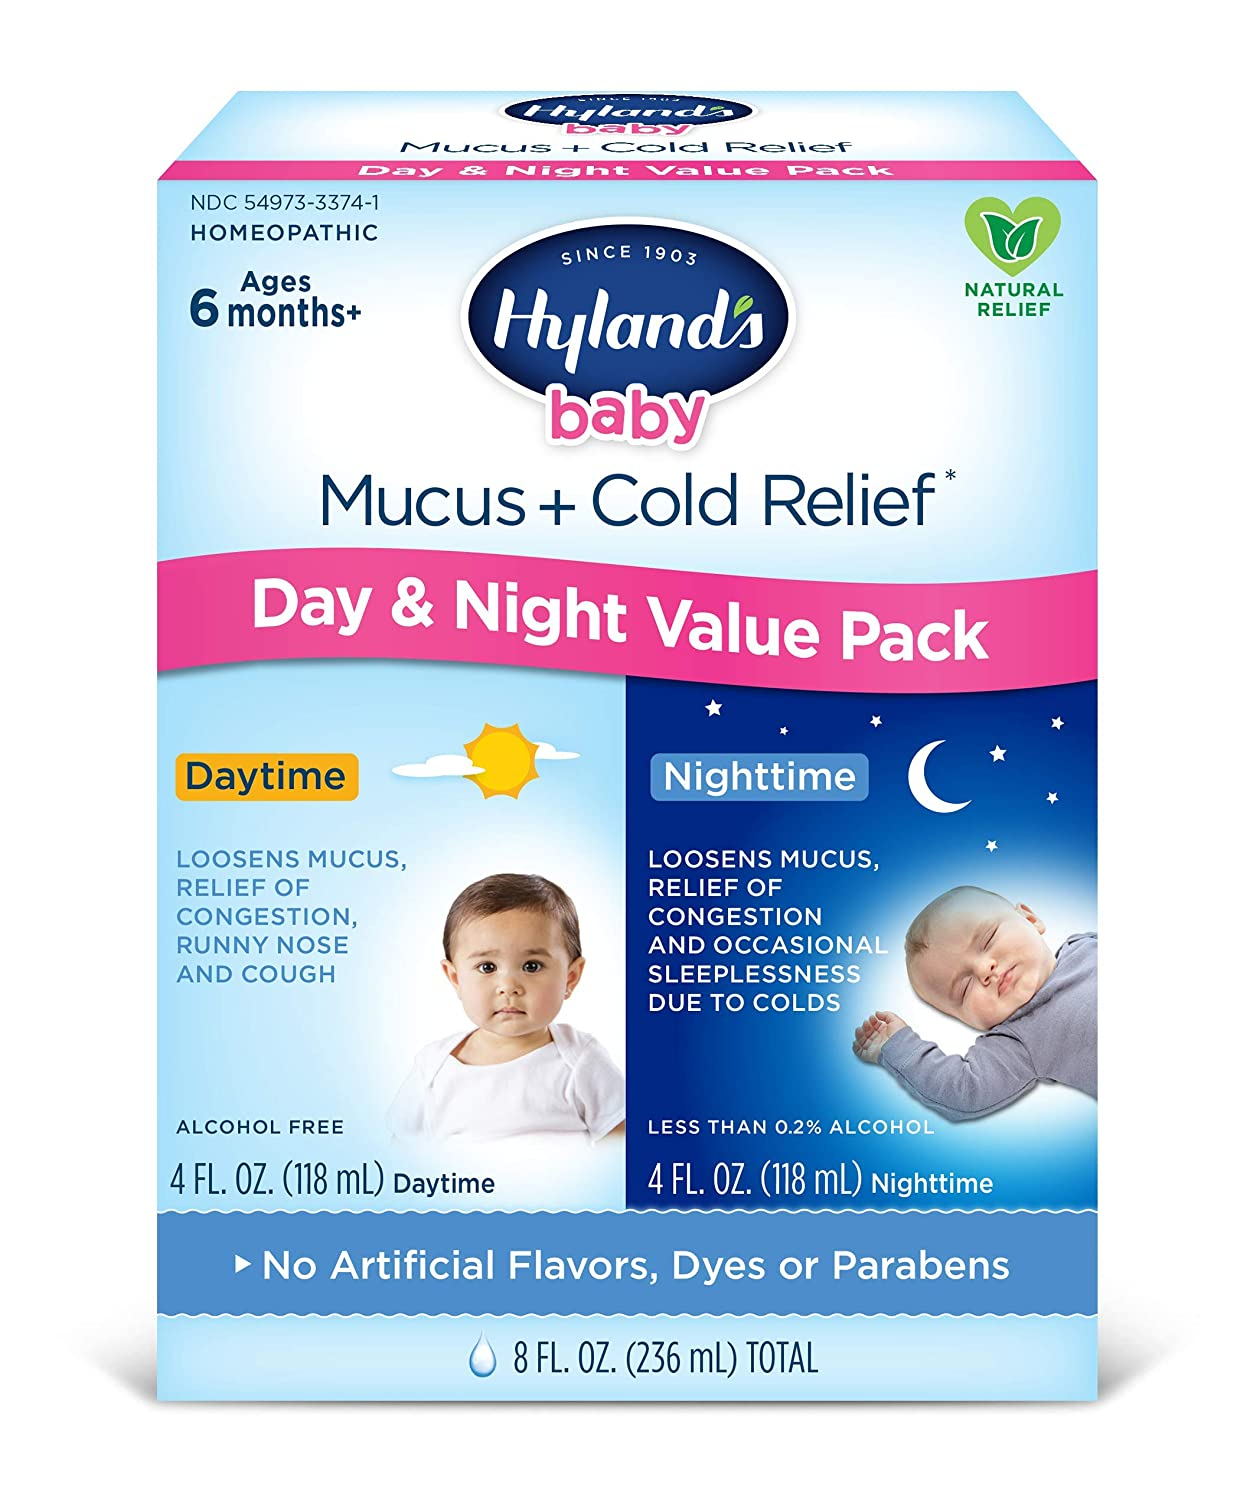 What Cough Medicine Is Suitable For Babies Of 4 Months?